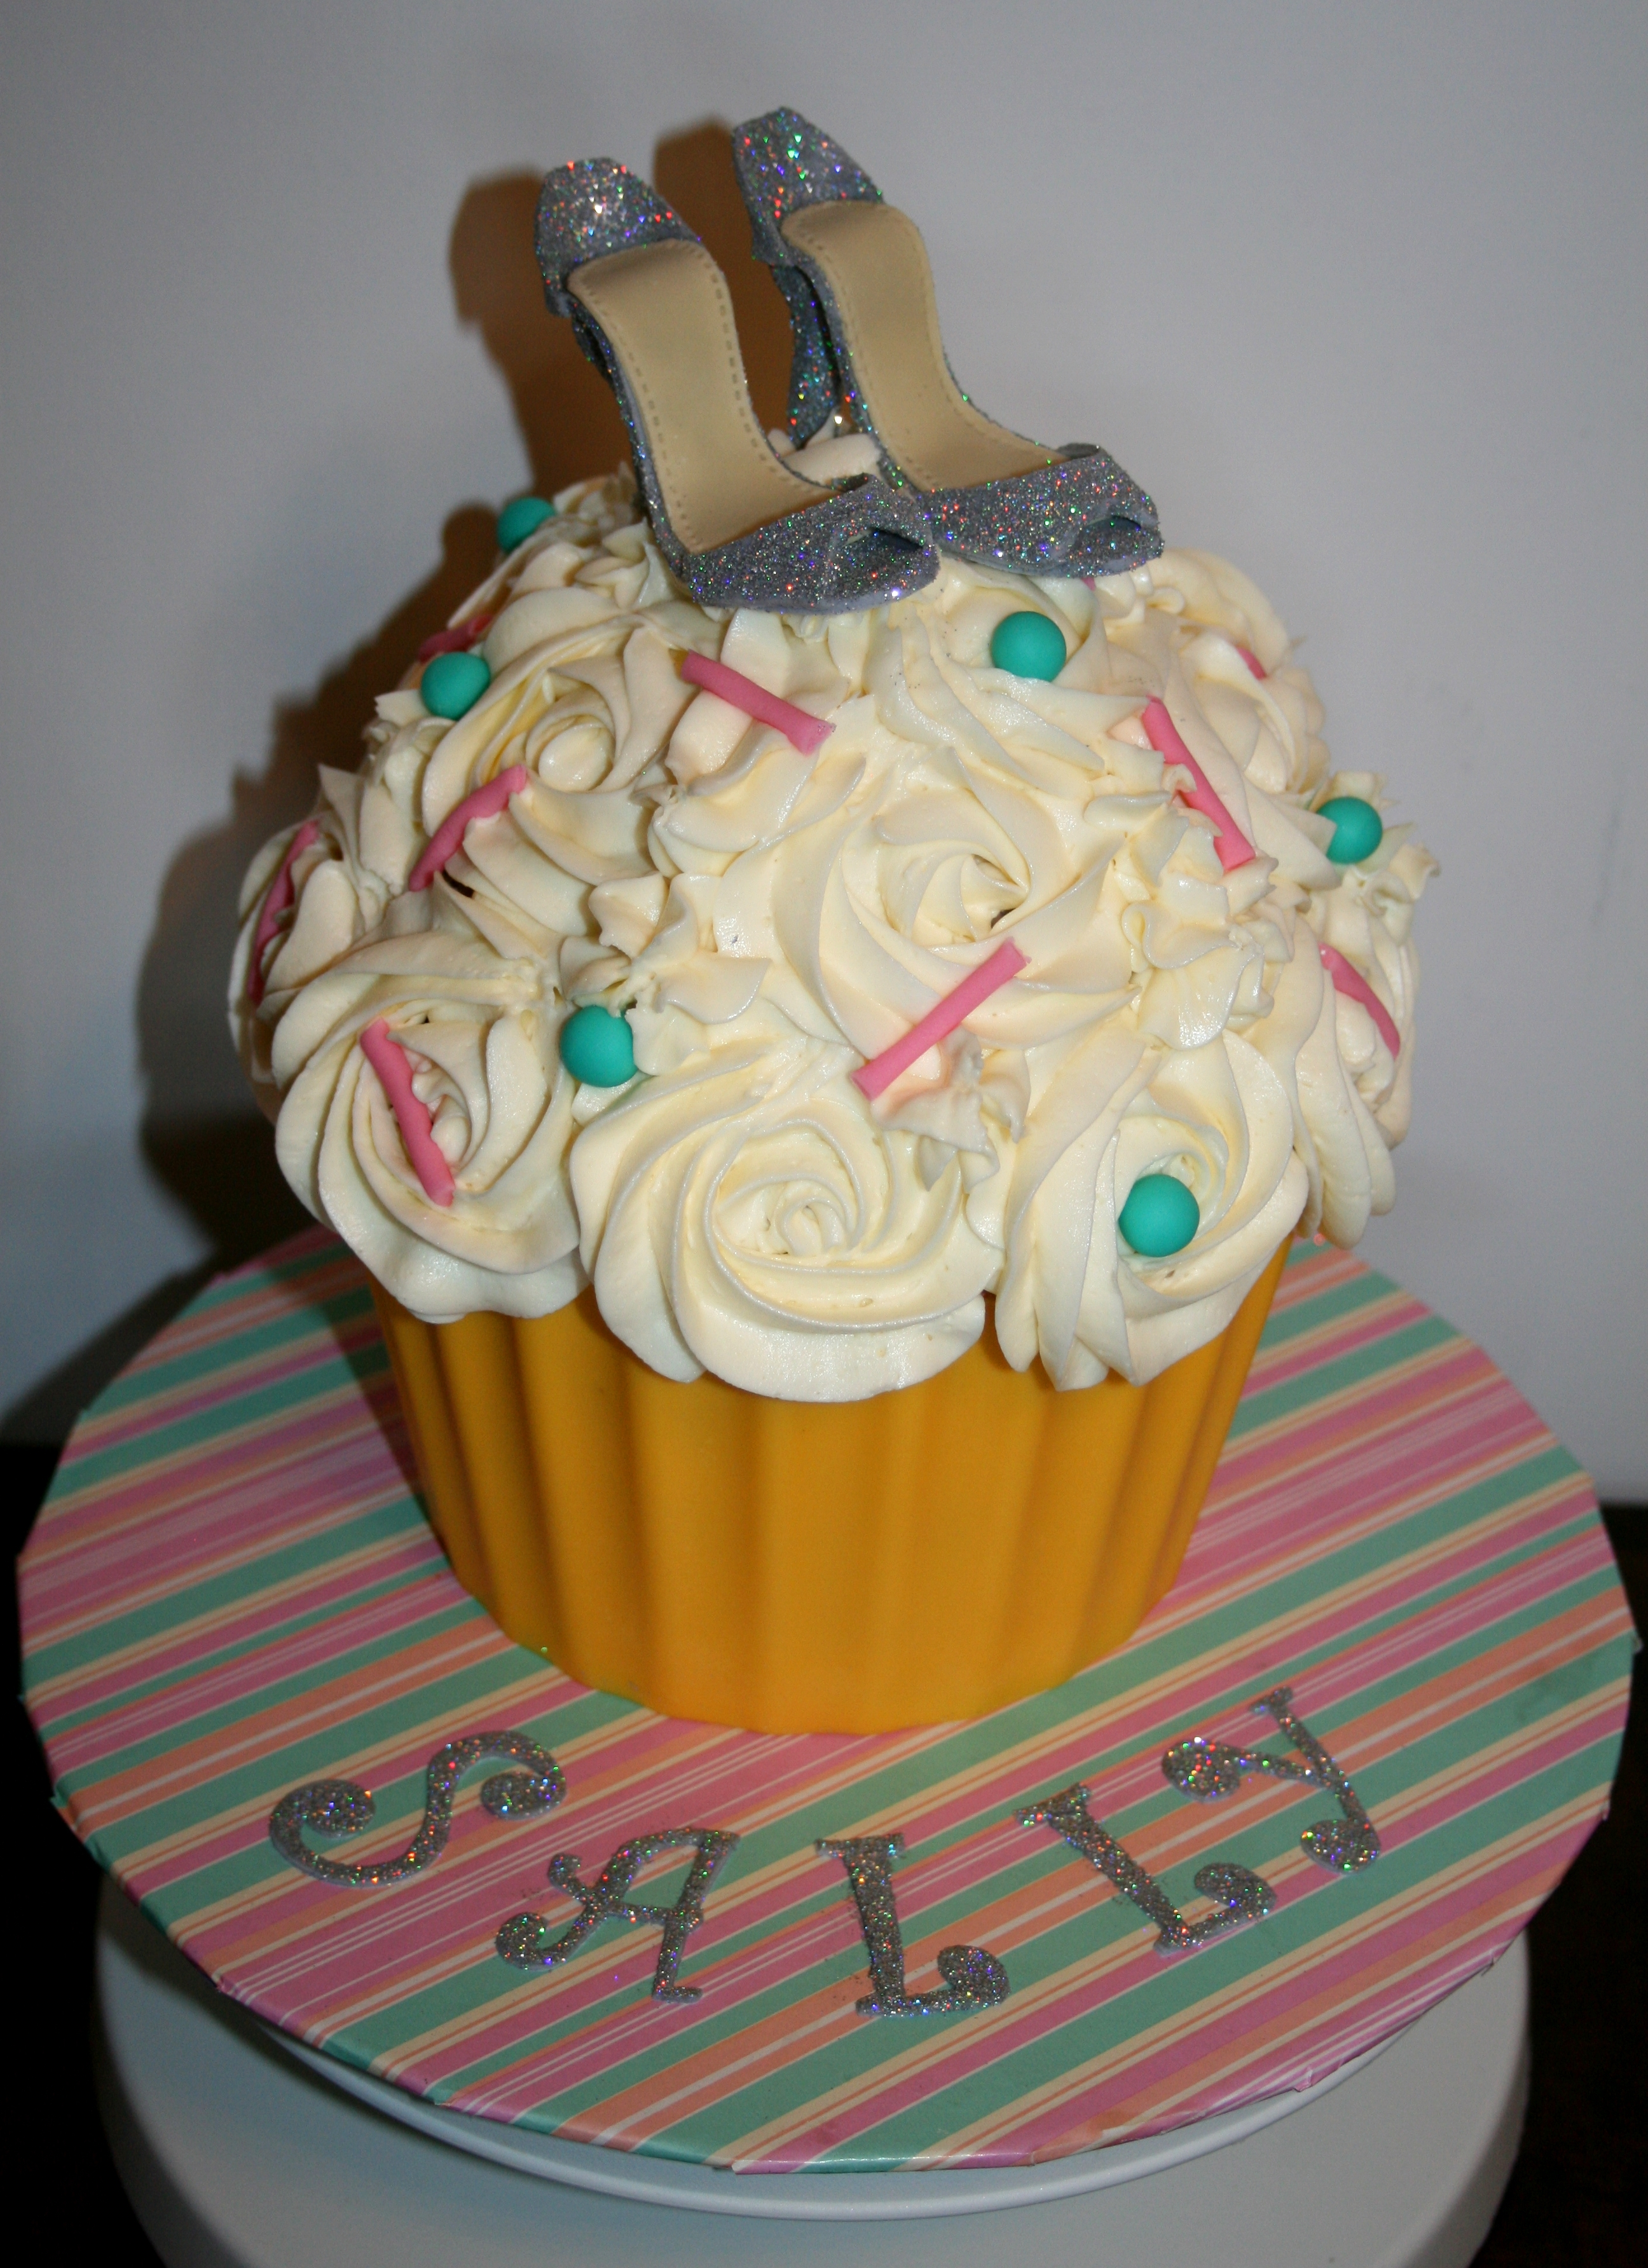 Giant Vanilla Cupcake with handmade gumpaste shoes. Base is wilton yellow candy melts, thanks for looking!